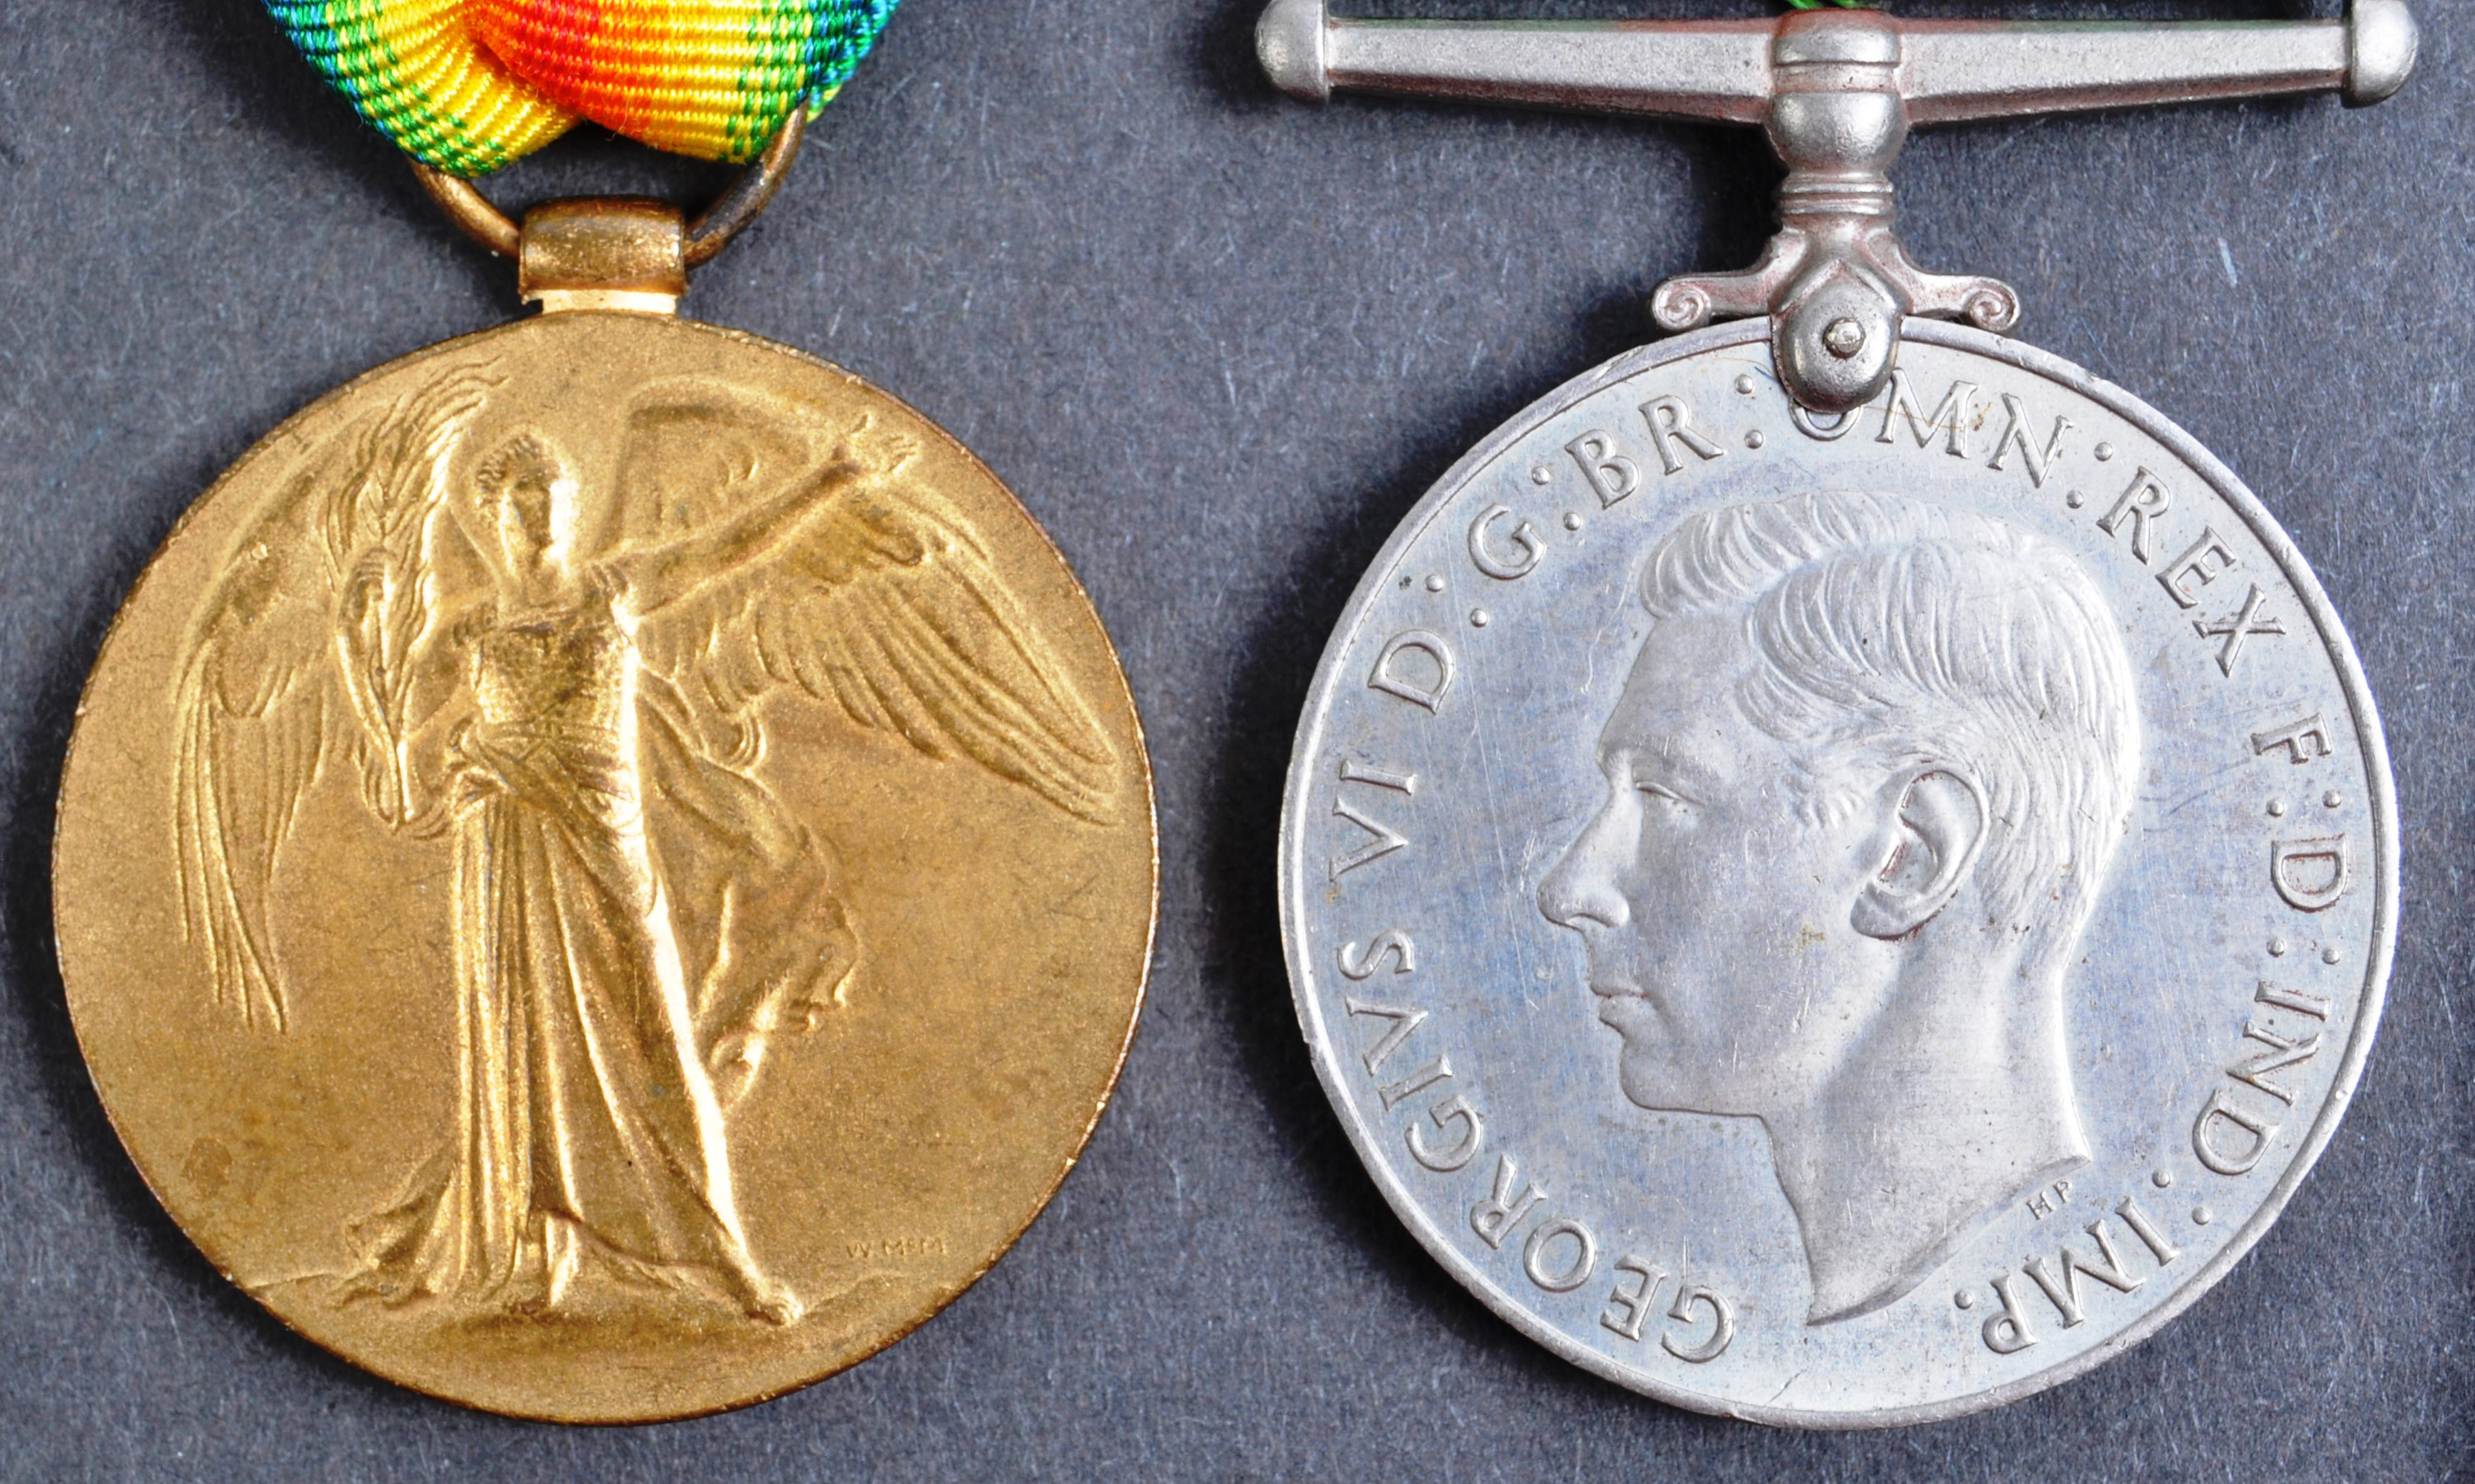 WWI & WWII INTEREST MEDAL GROUP - ACTING SERGEANT IN THE RAMC - Image 4 of 8